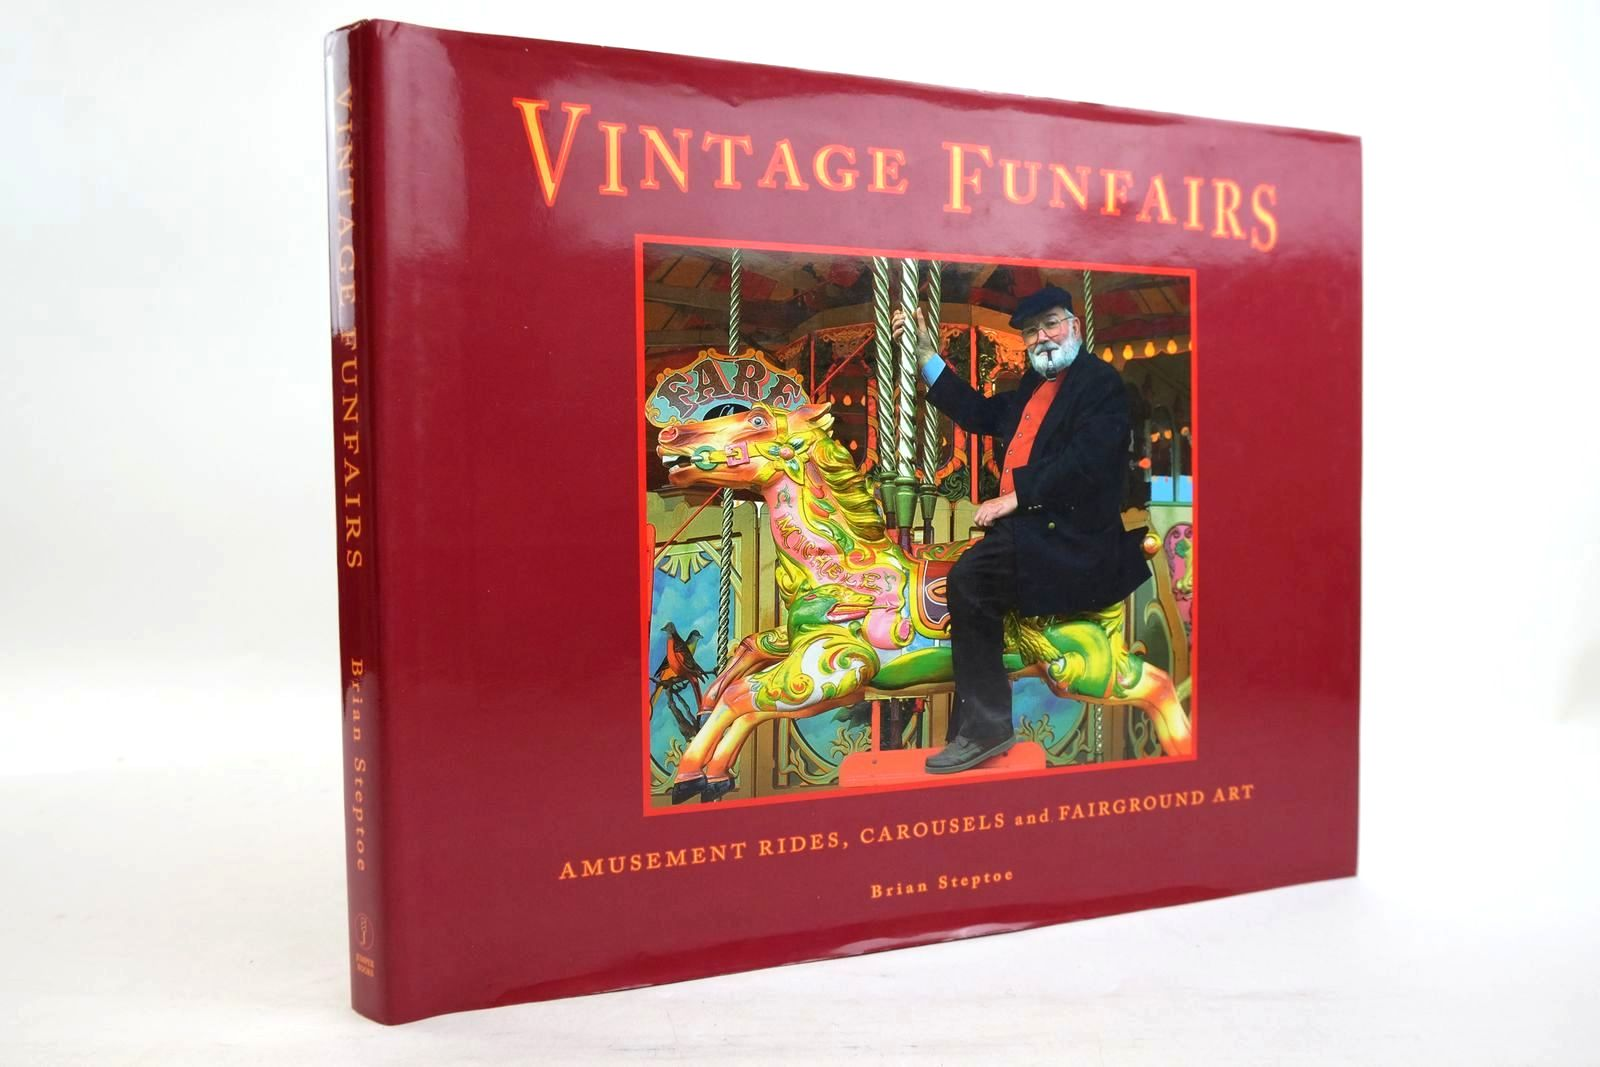 Photo of VINTAGE FUNFAIRS AMUSEMENT RIDES, CAROUSELS AND FAIRGROUND ART written by Steptoe, Brian published by Jumper Books (STOCK CODE: 2134452)  for sale by Stella & Rose's Books